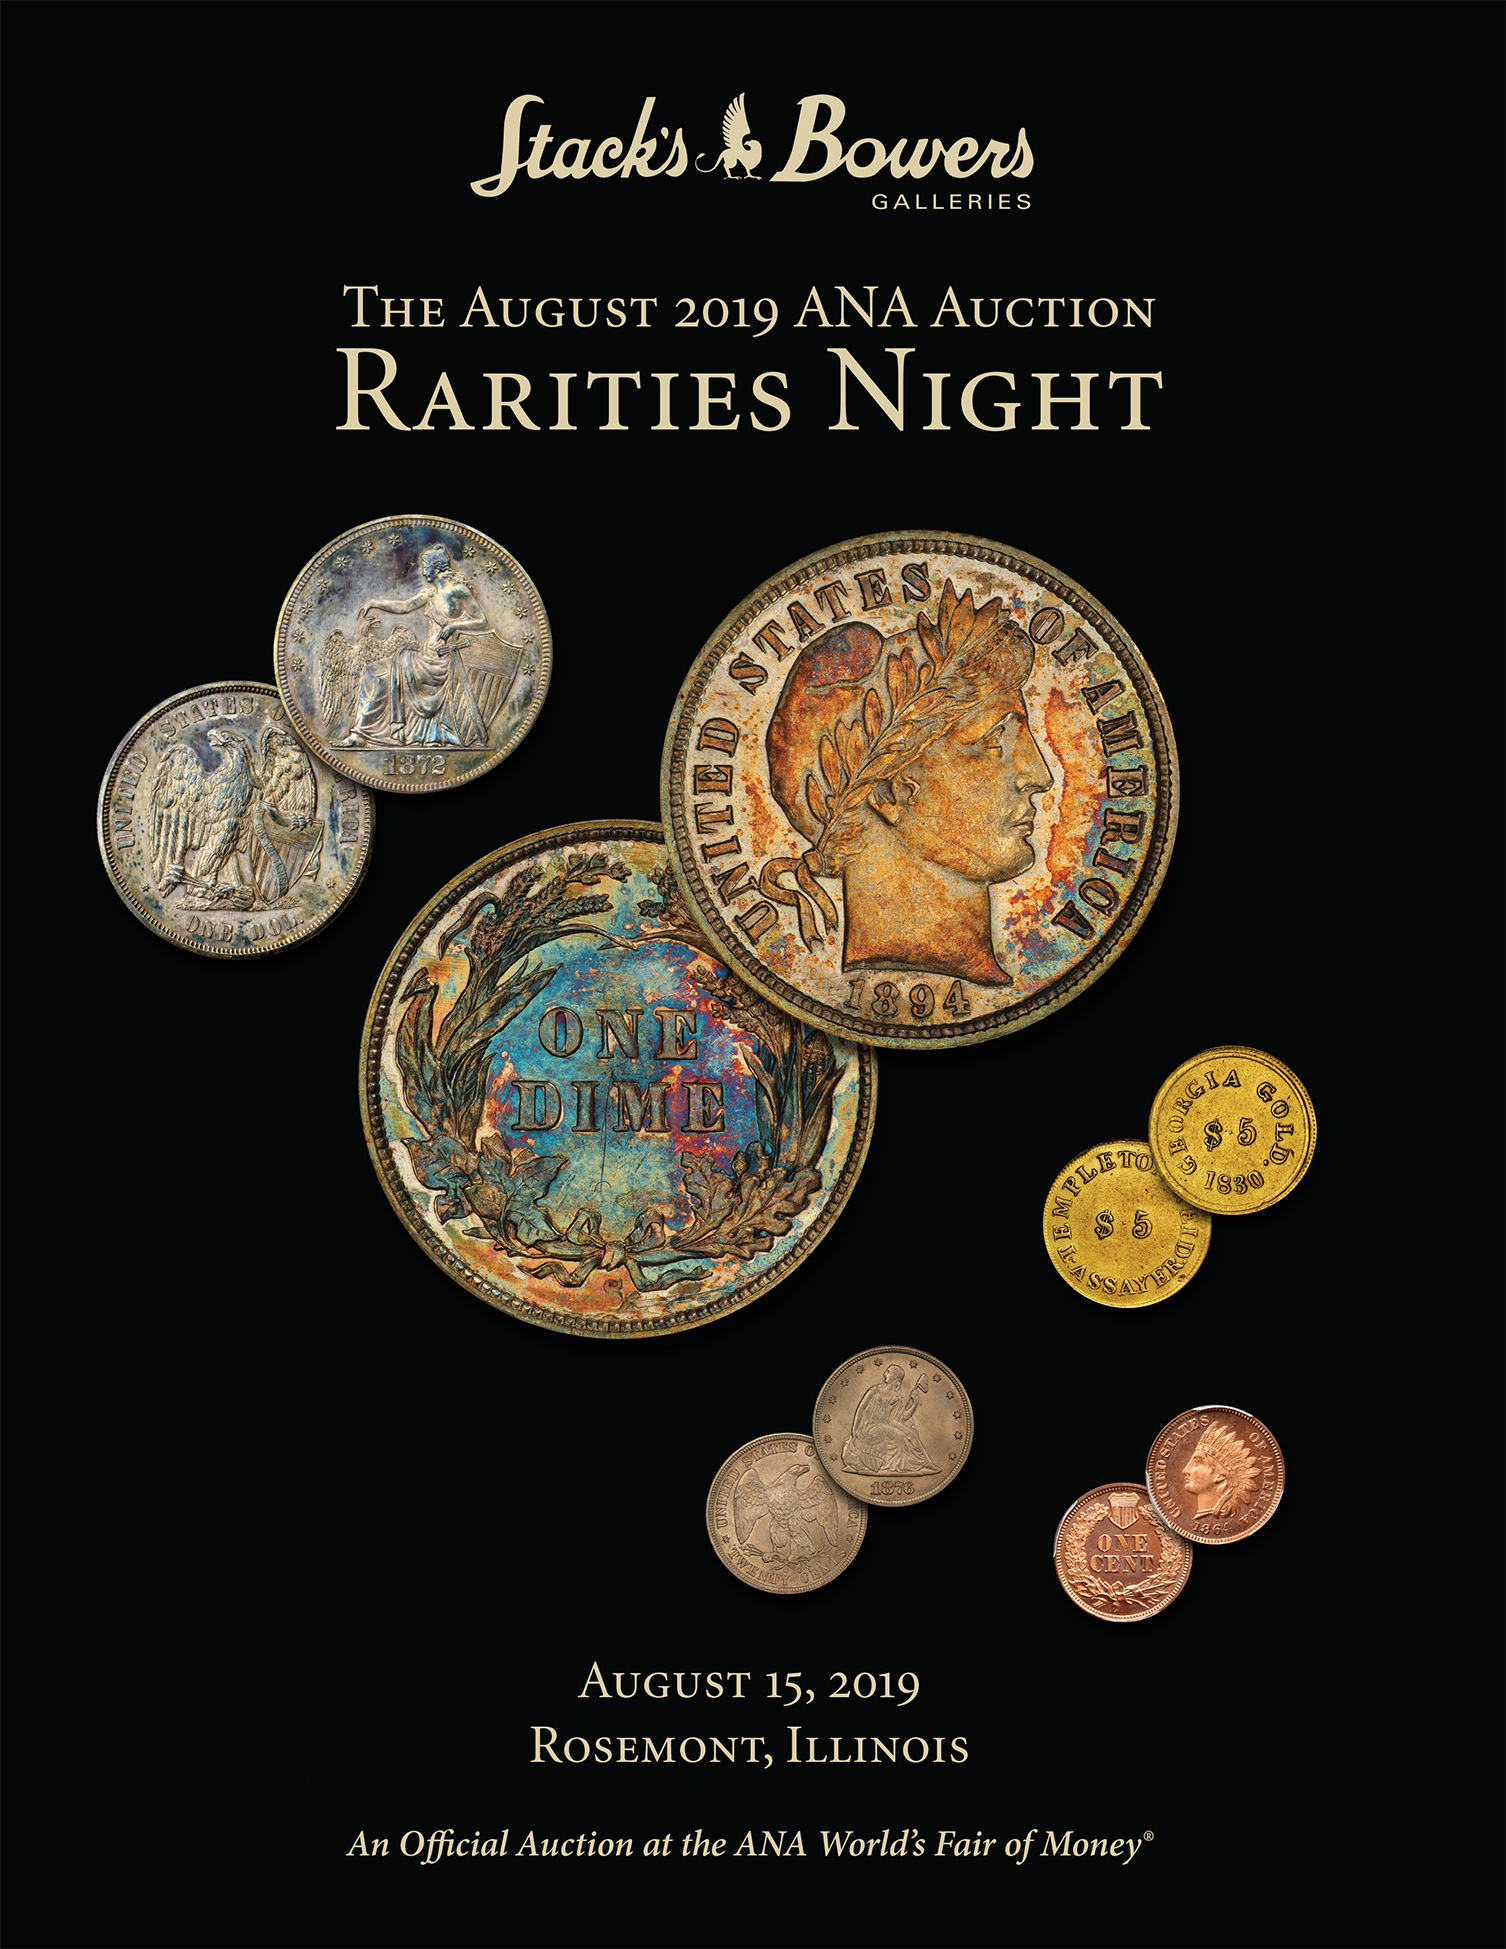 The August 2019 ANA Rarities Night Auction